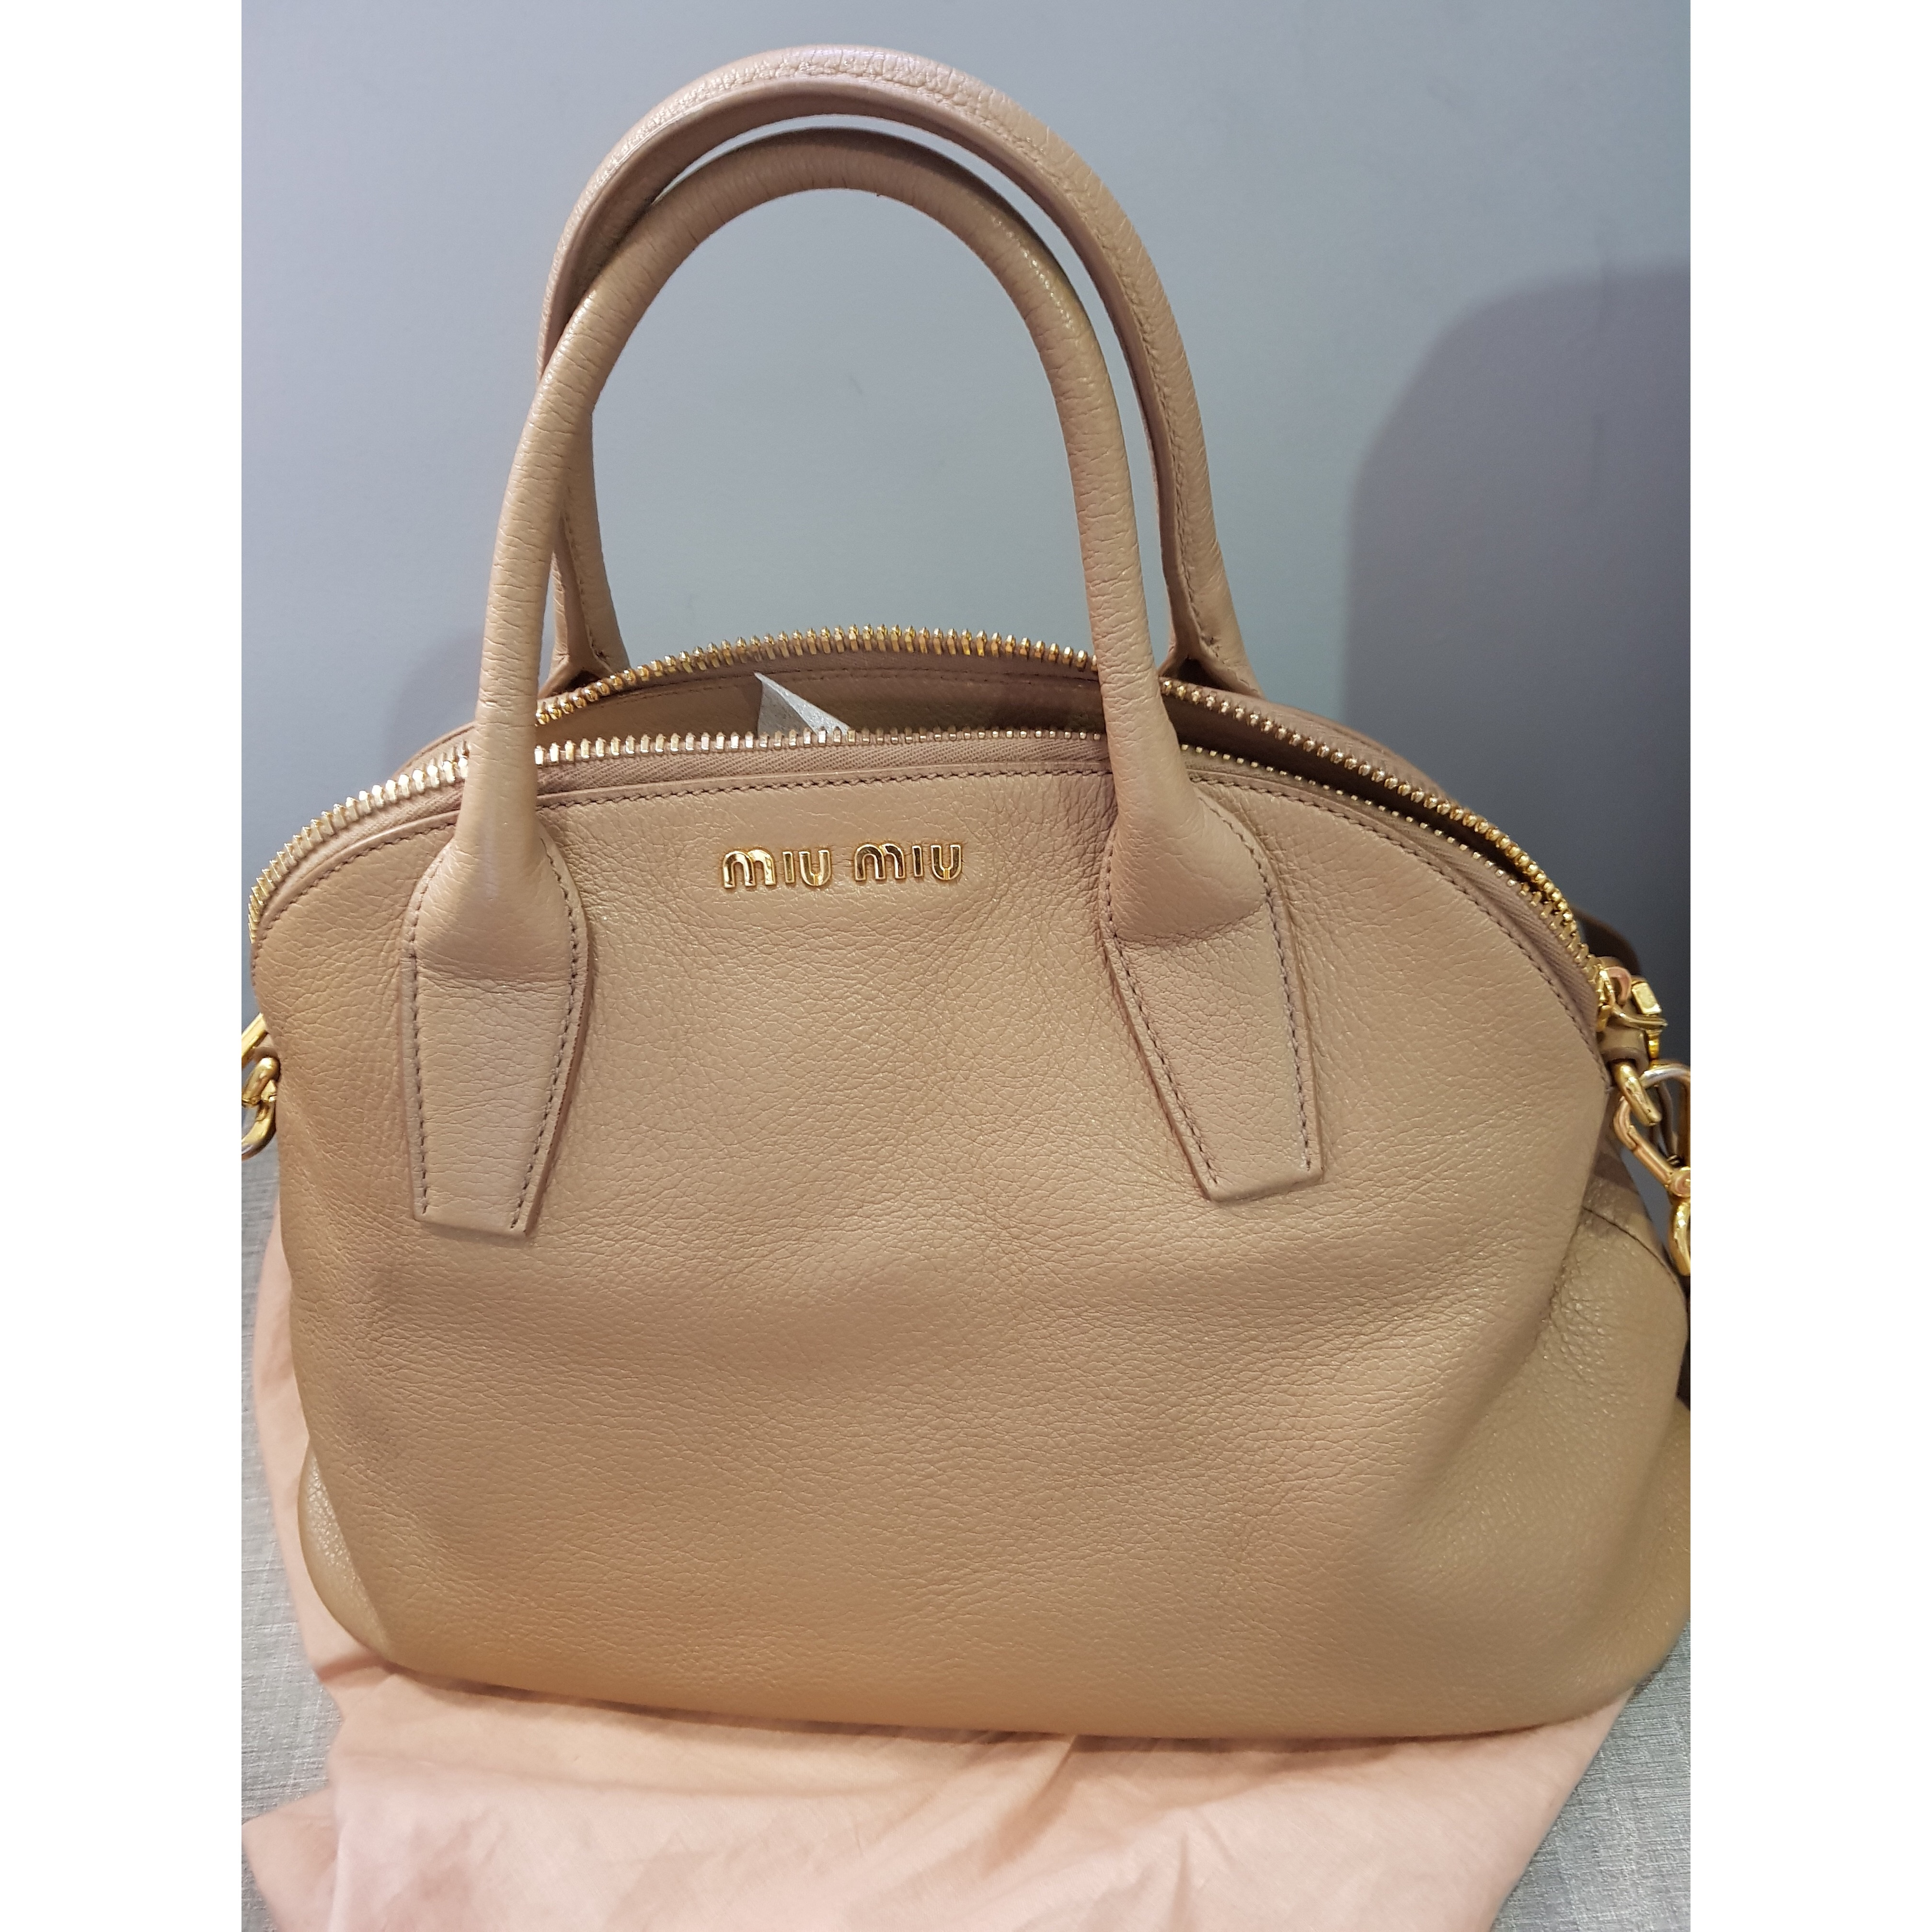 e56361ef3207 MiuMiu bag Measurements   heigh 24 and base 37 (using measuring tape)  Condition   9 10 Color Material   calf leather(Madras) Written in cert come  with Tax ...